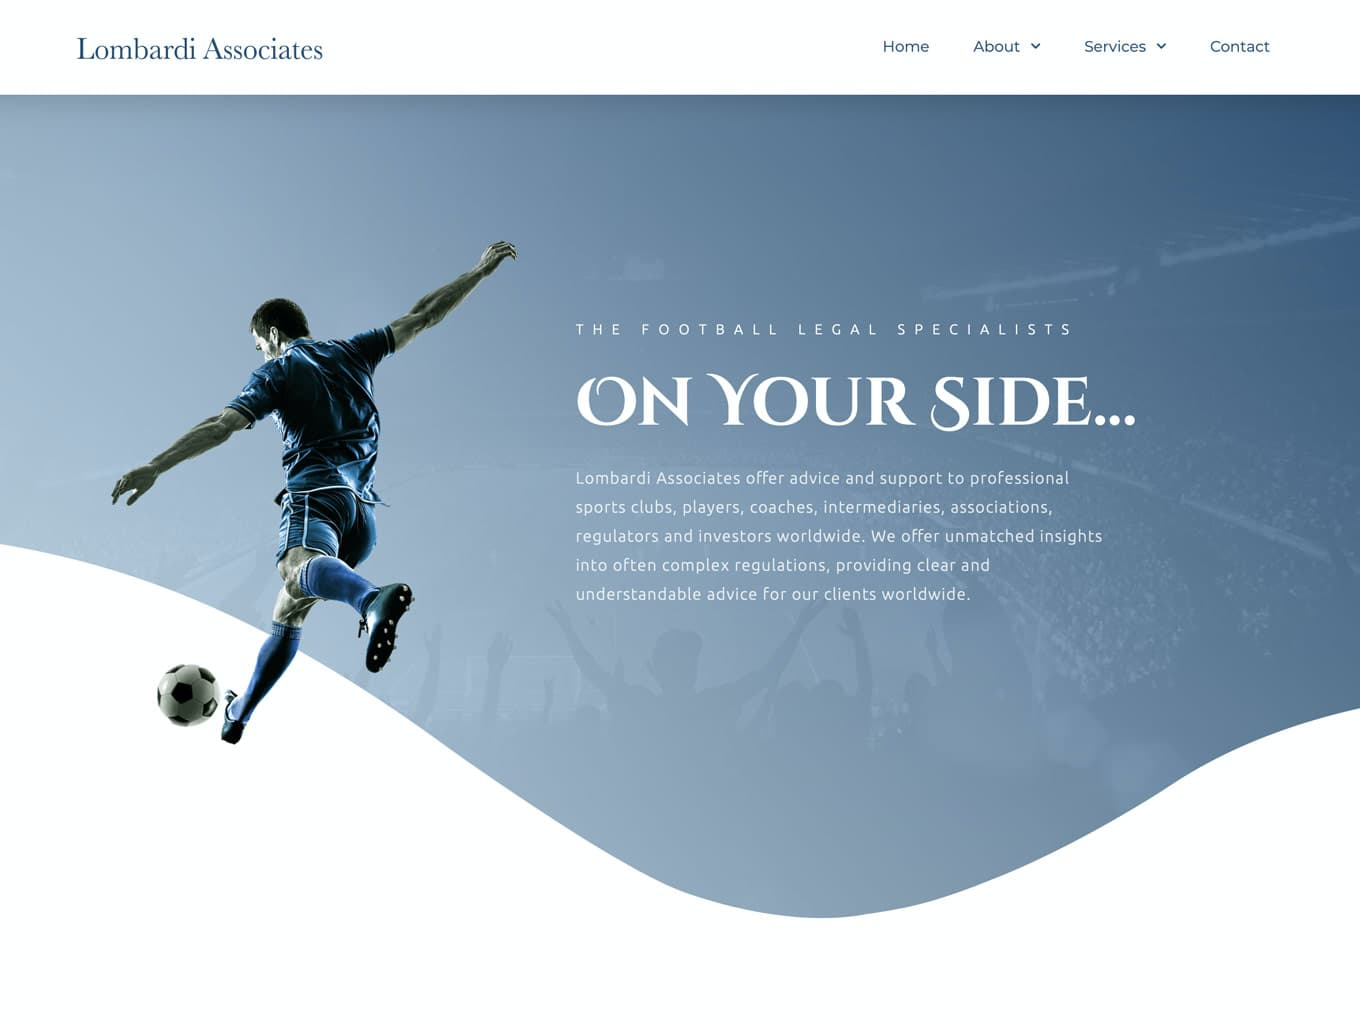 Lombardi Associates Website Design